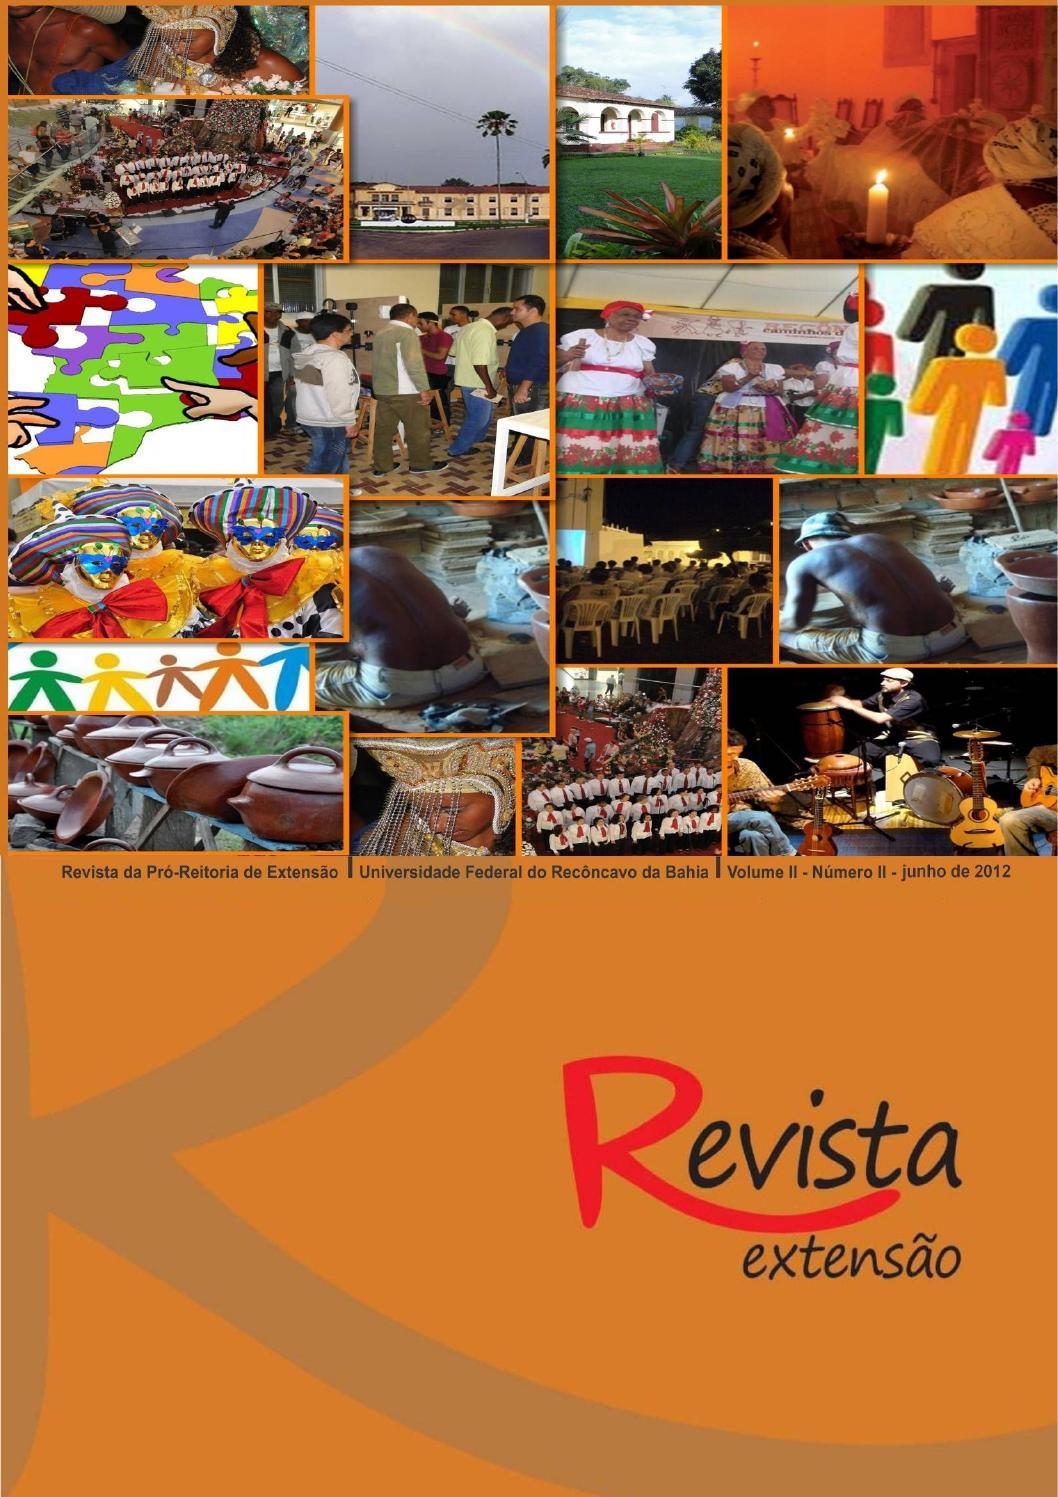 Revista extenso v2 n1 by ufrb issuu fandeluxe